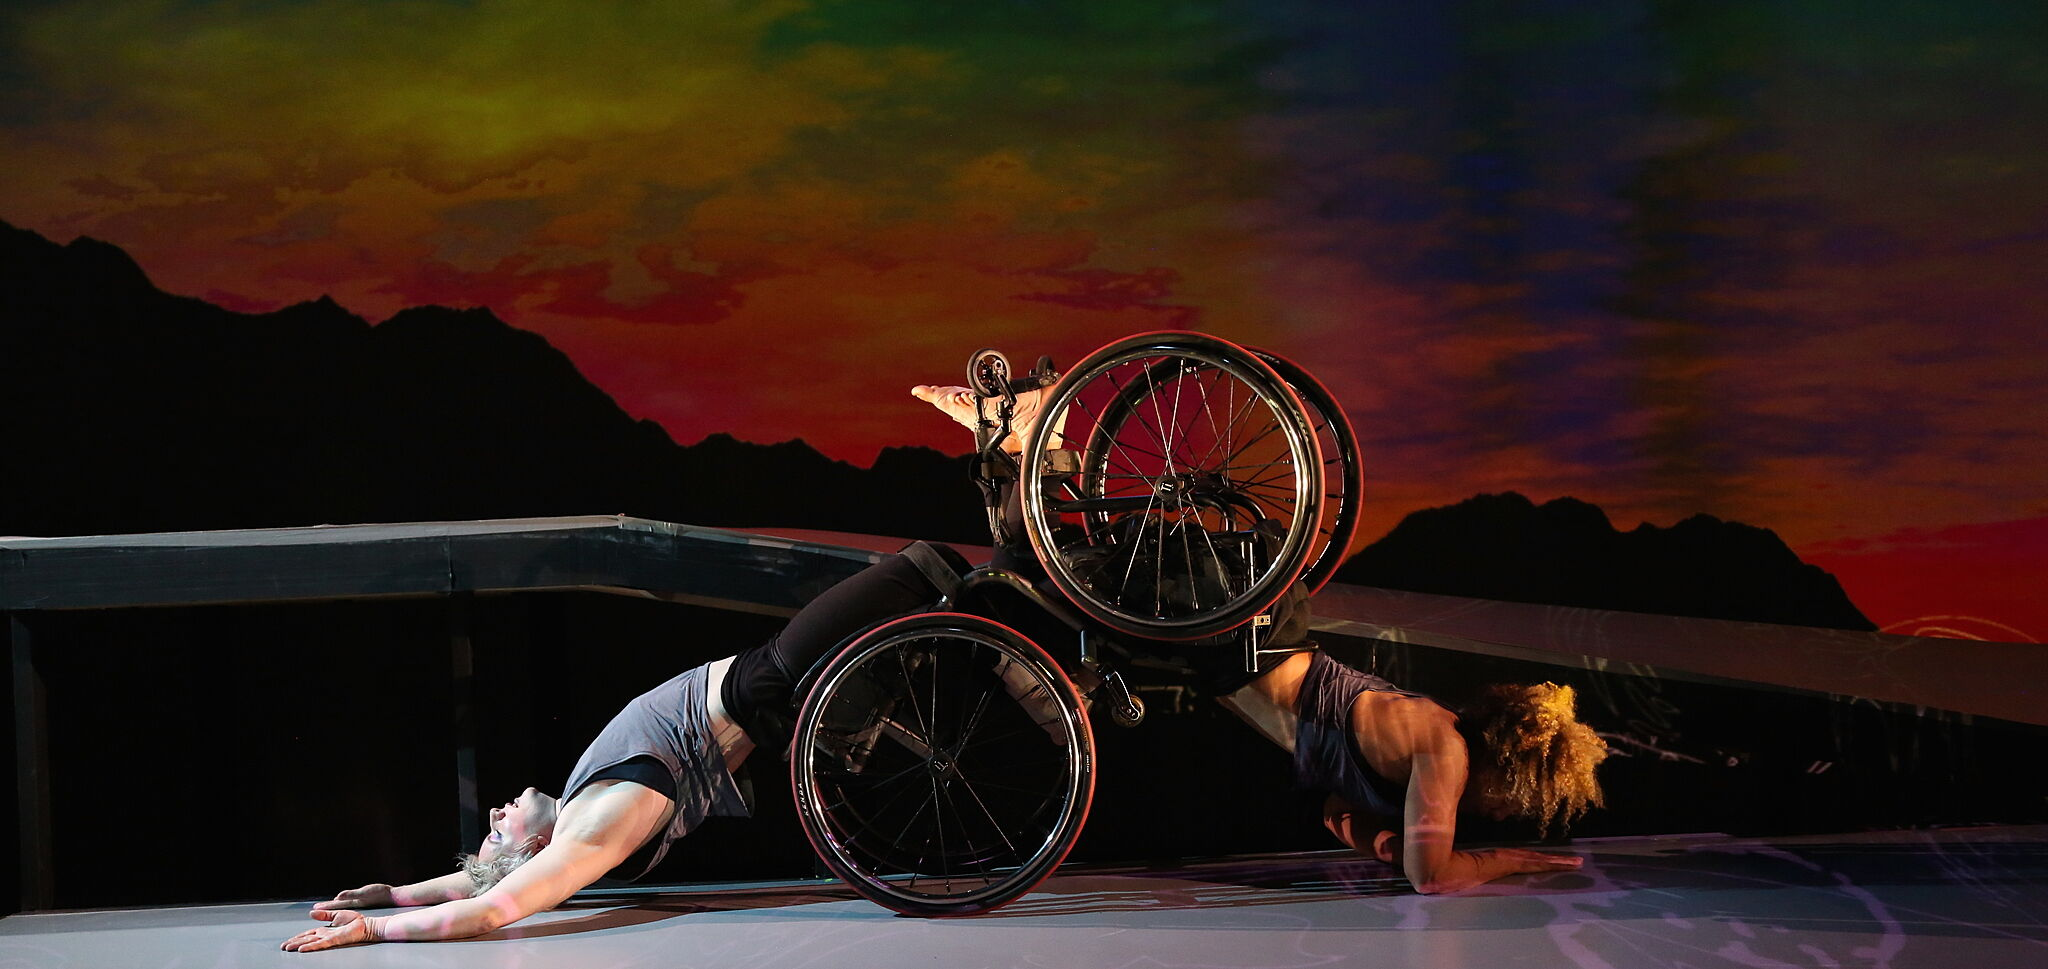 Two performers in wheelchairs doing a backbend.